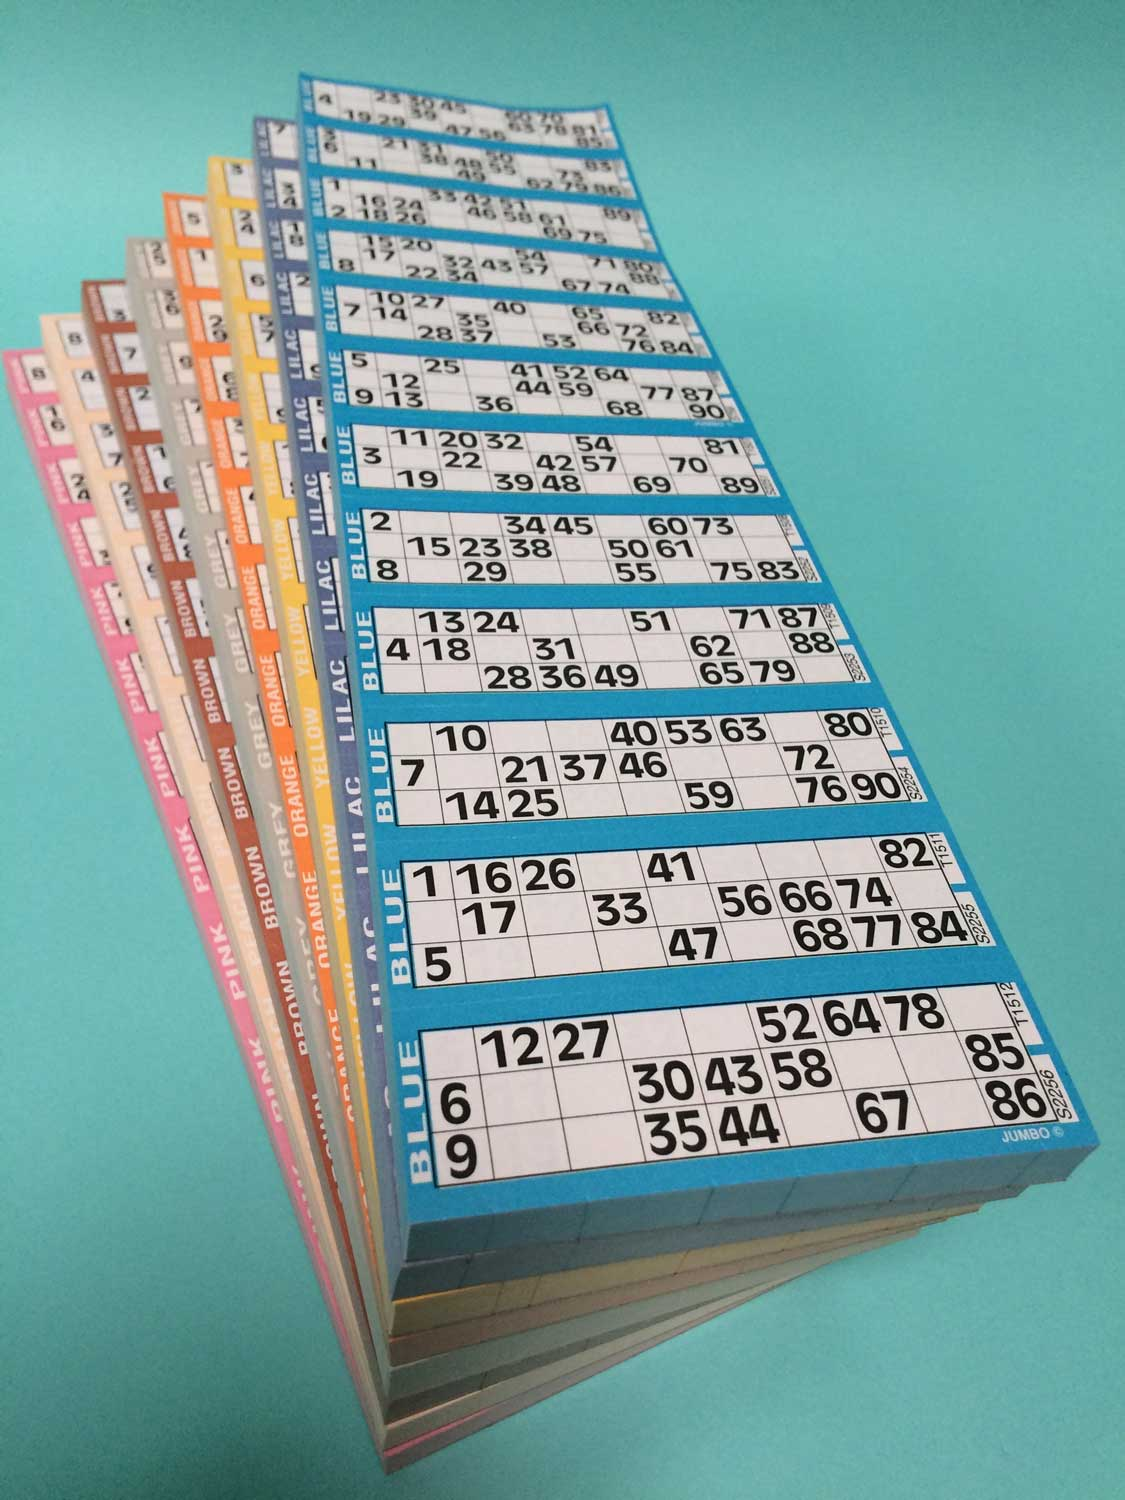 8 Pads of Bingo Single Flyers - 12 To View